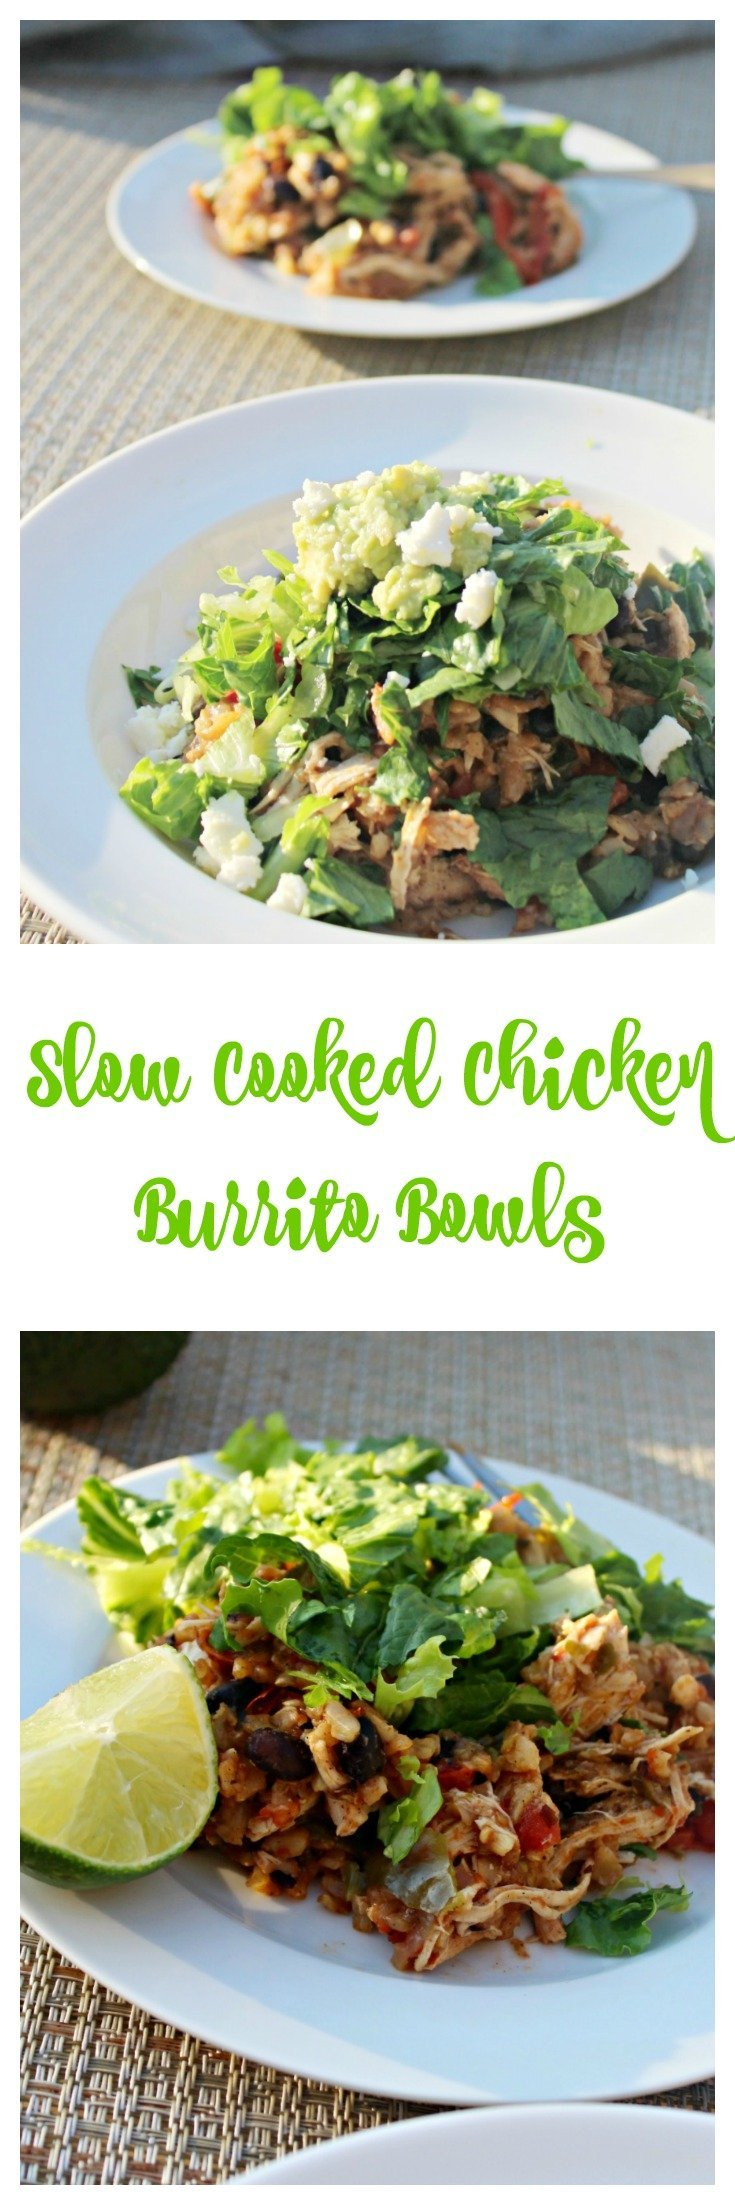 Slow Cooked Chicken Burrito Bowls are an easy meal for back to school. No need to turn on the oven, just throw everything in the slow cooker and you'll have dinner ready when you come home.